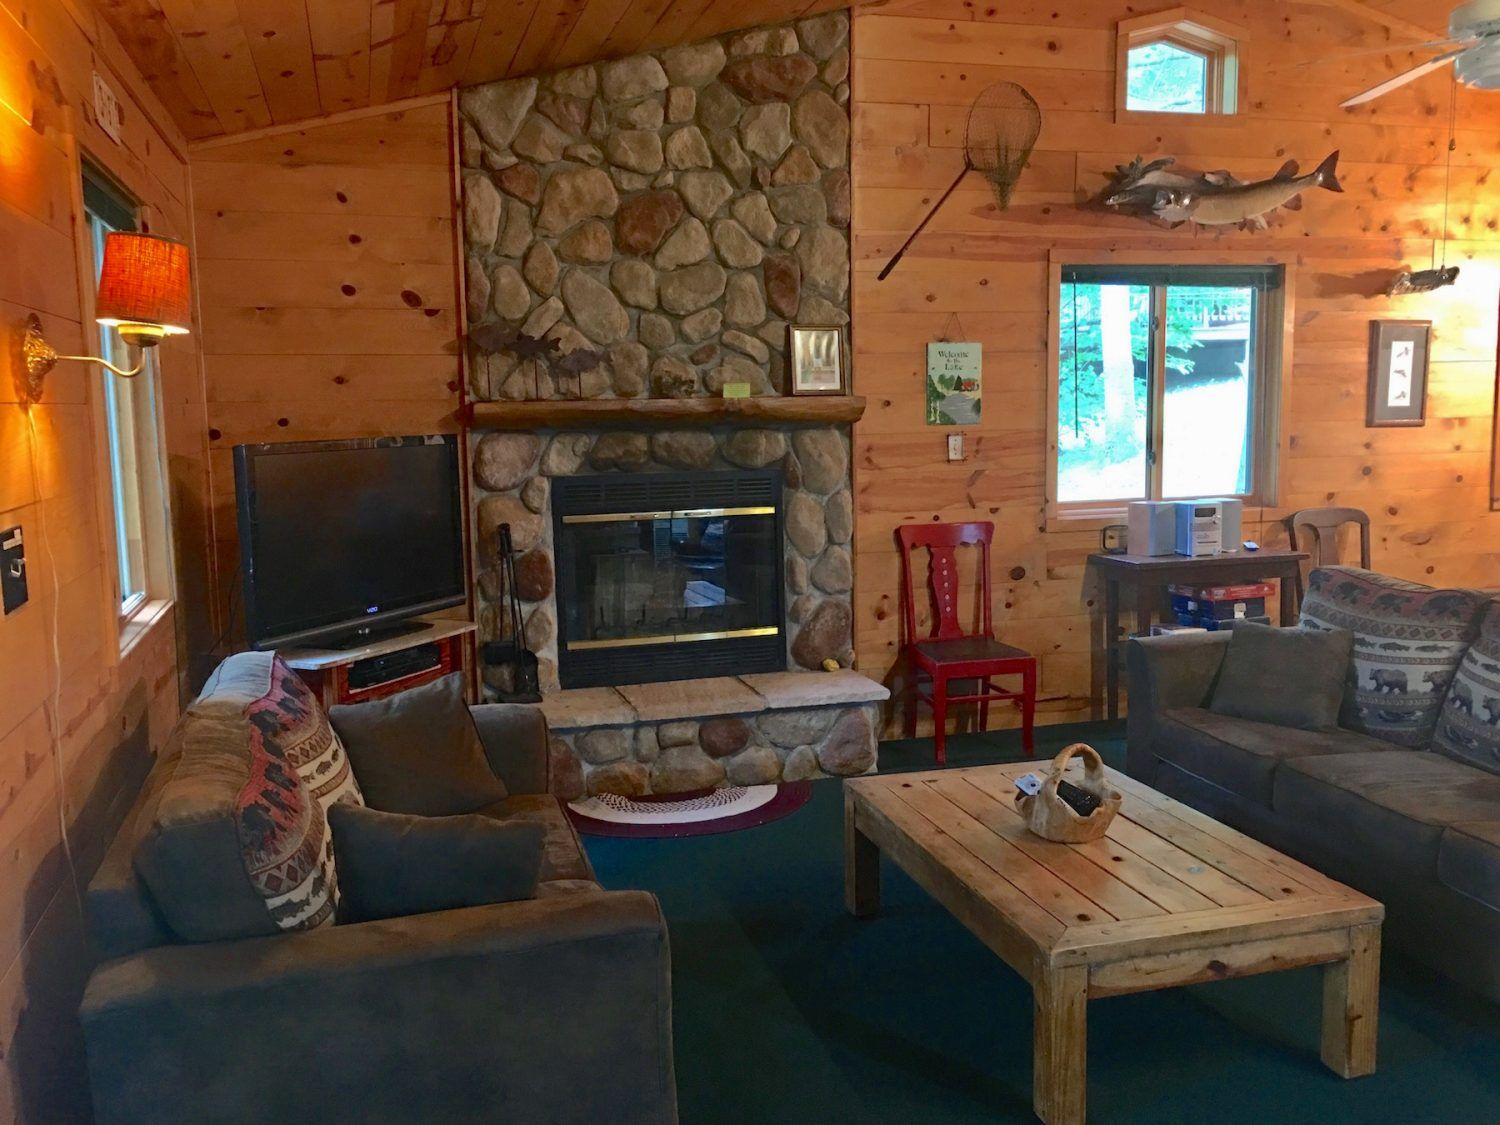 The Marq Cabin